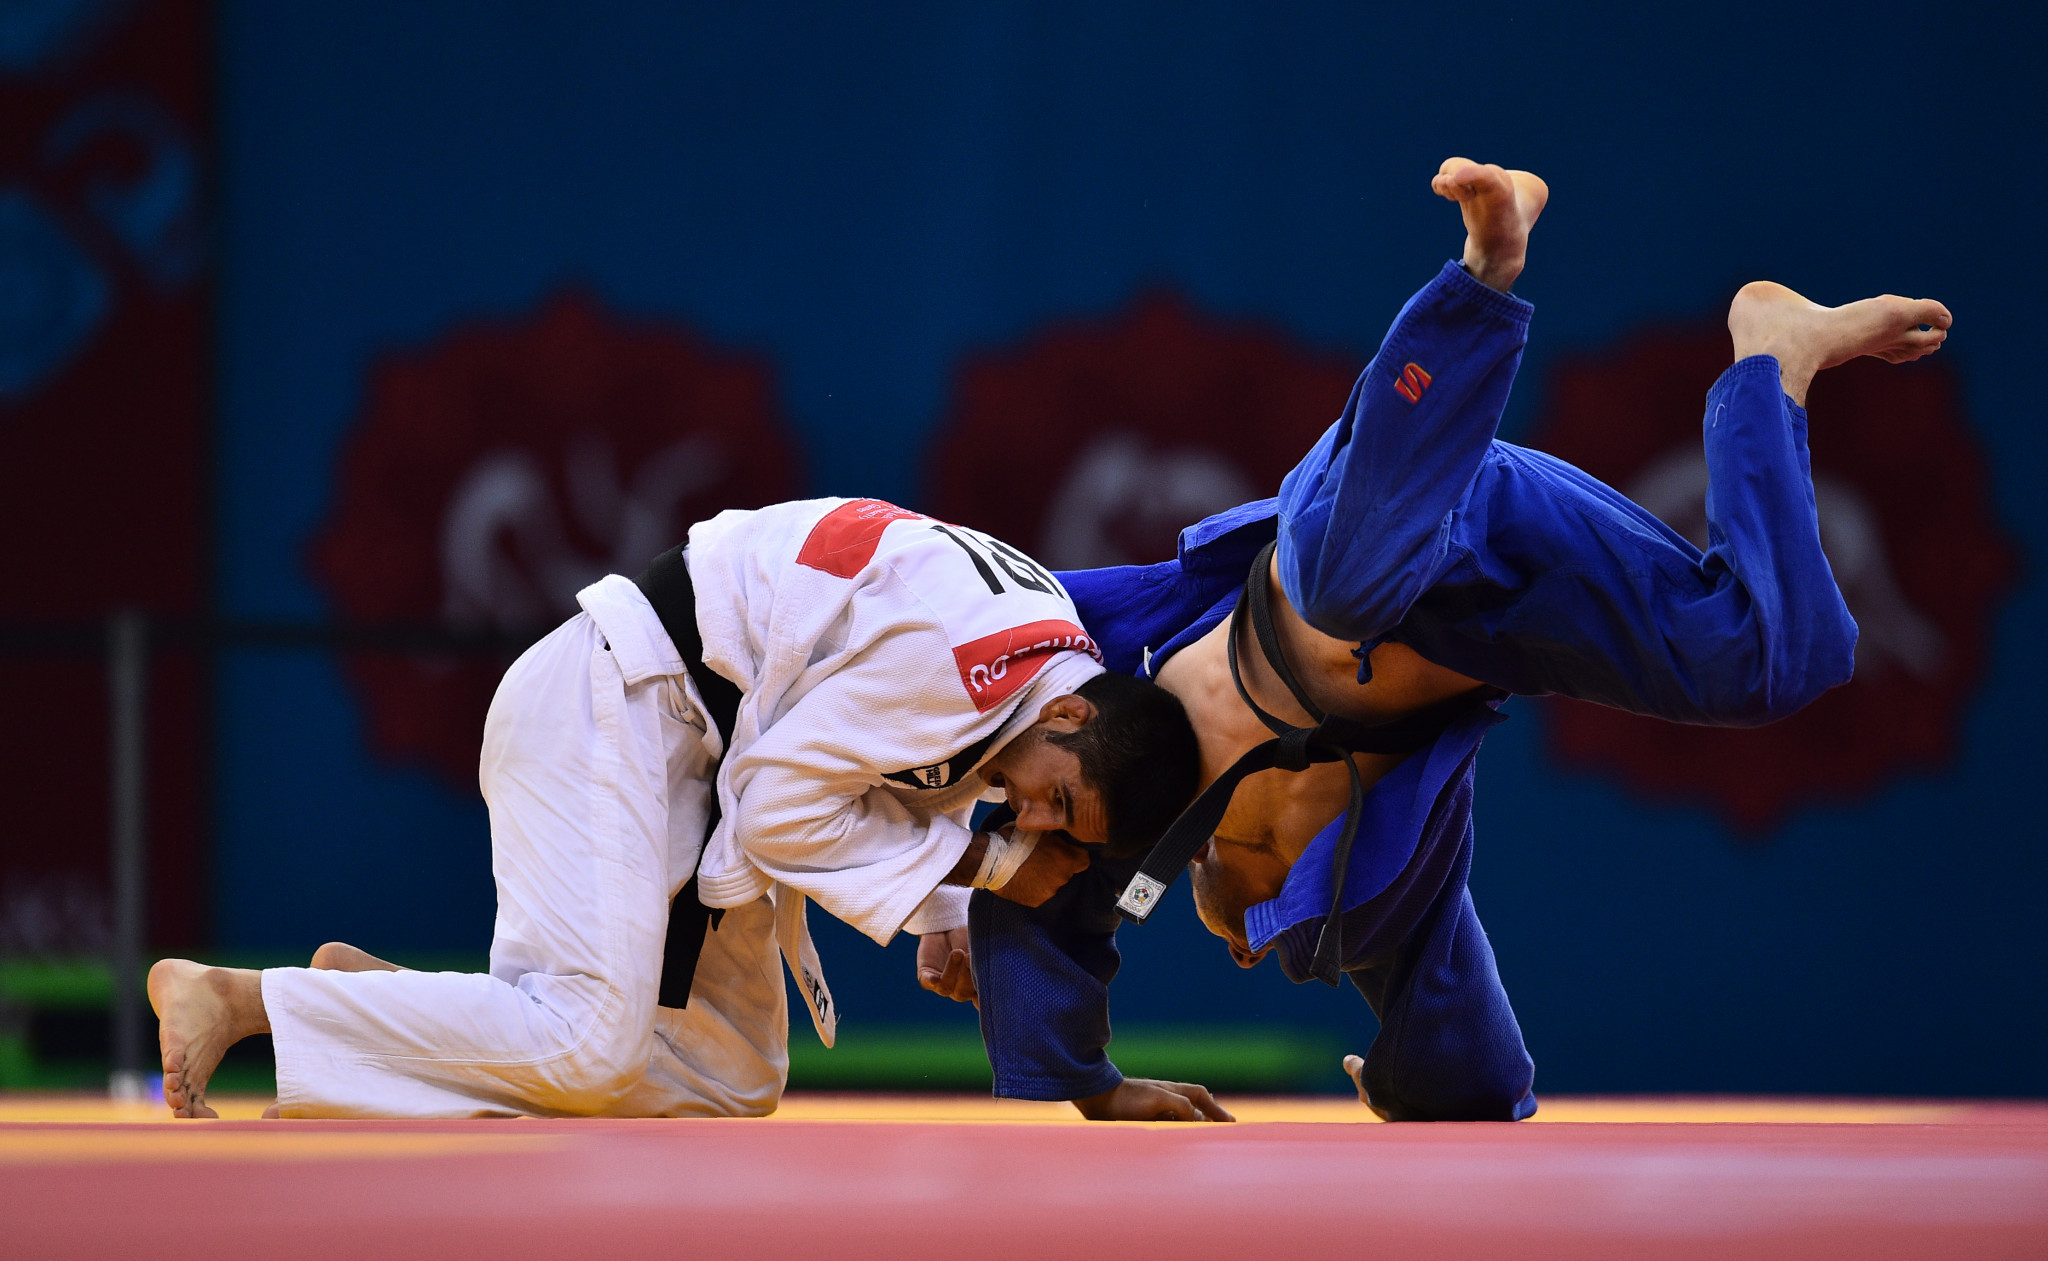 Esther Stam previously commentated on the International Judo Federation World Championships in September ©Getty Images